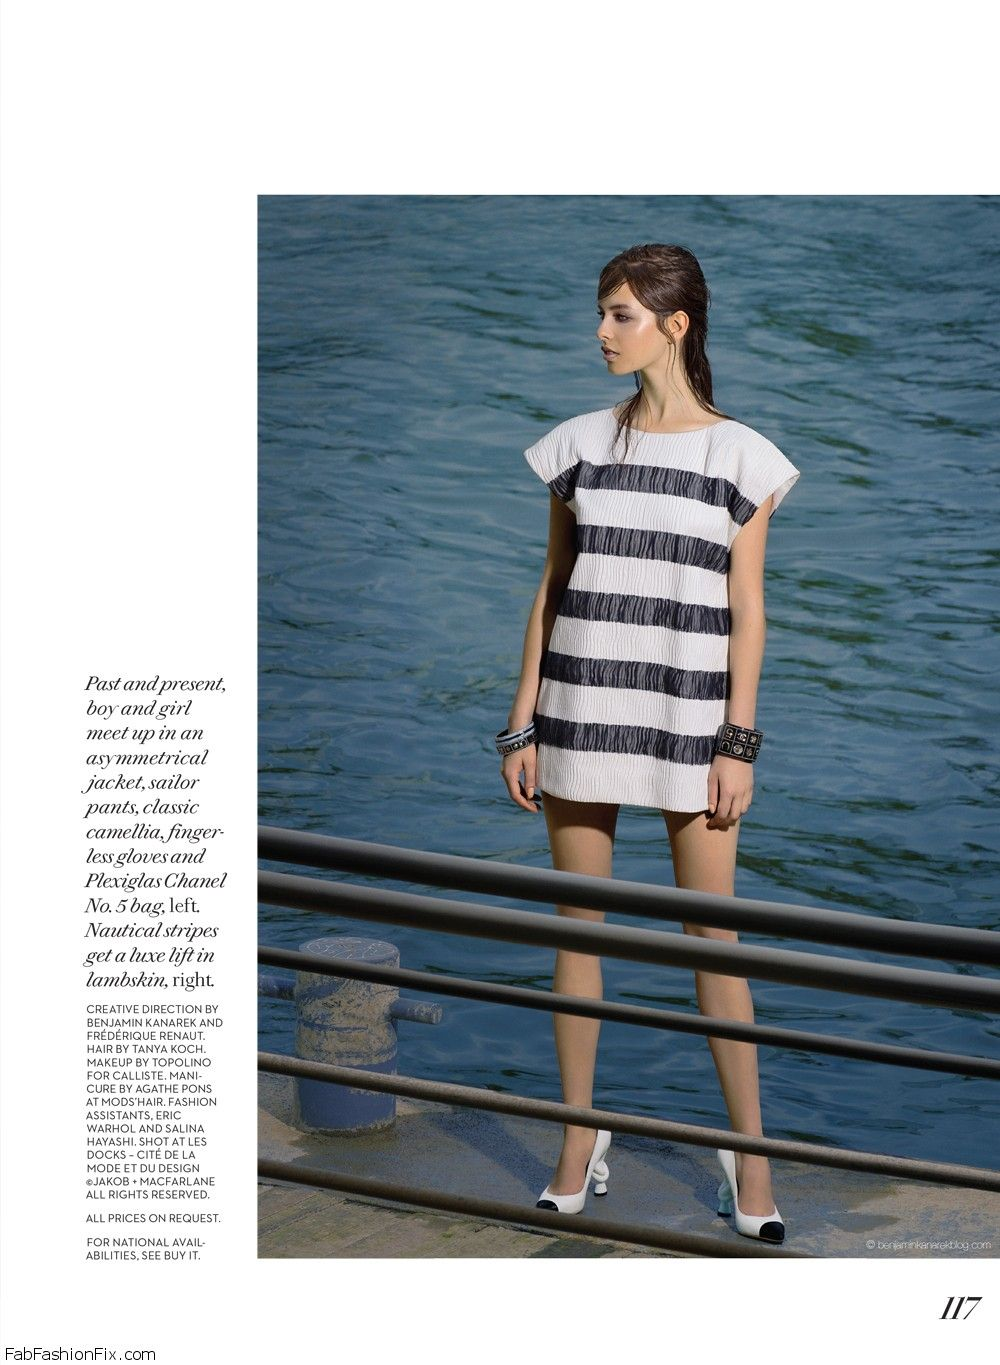 10-Linda-Kanyo-Chanel-Resort-Waters-Edge-Benjamin-Kanarek-Fashion-Magazine